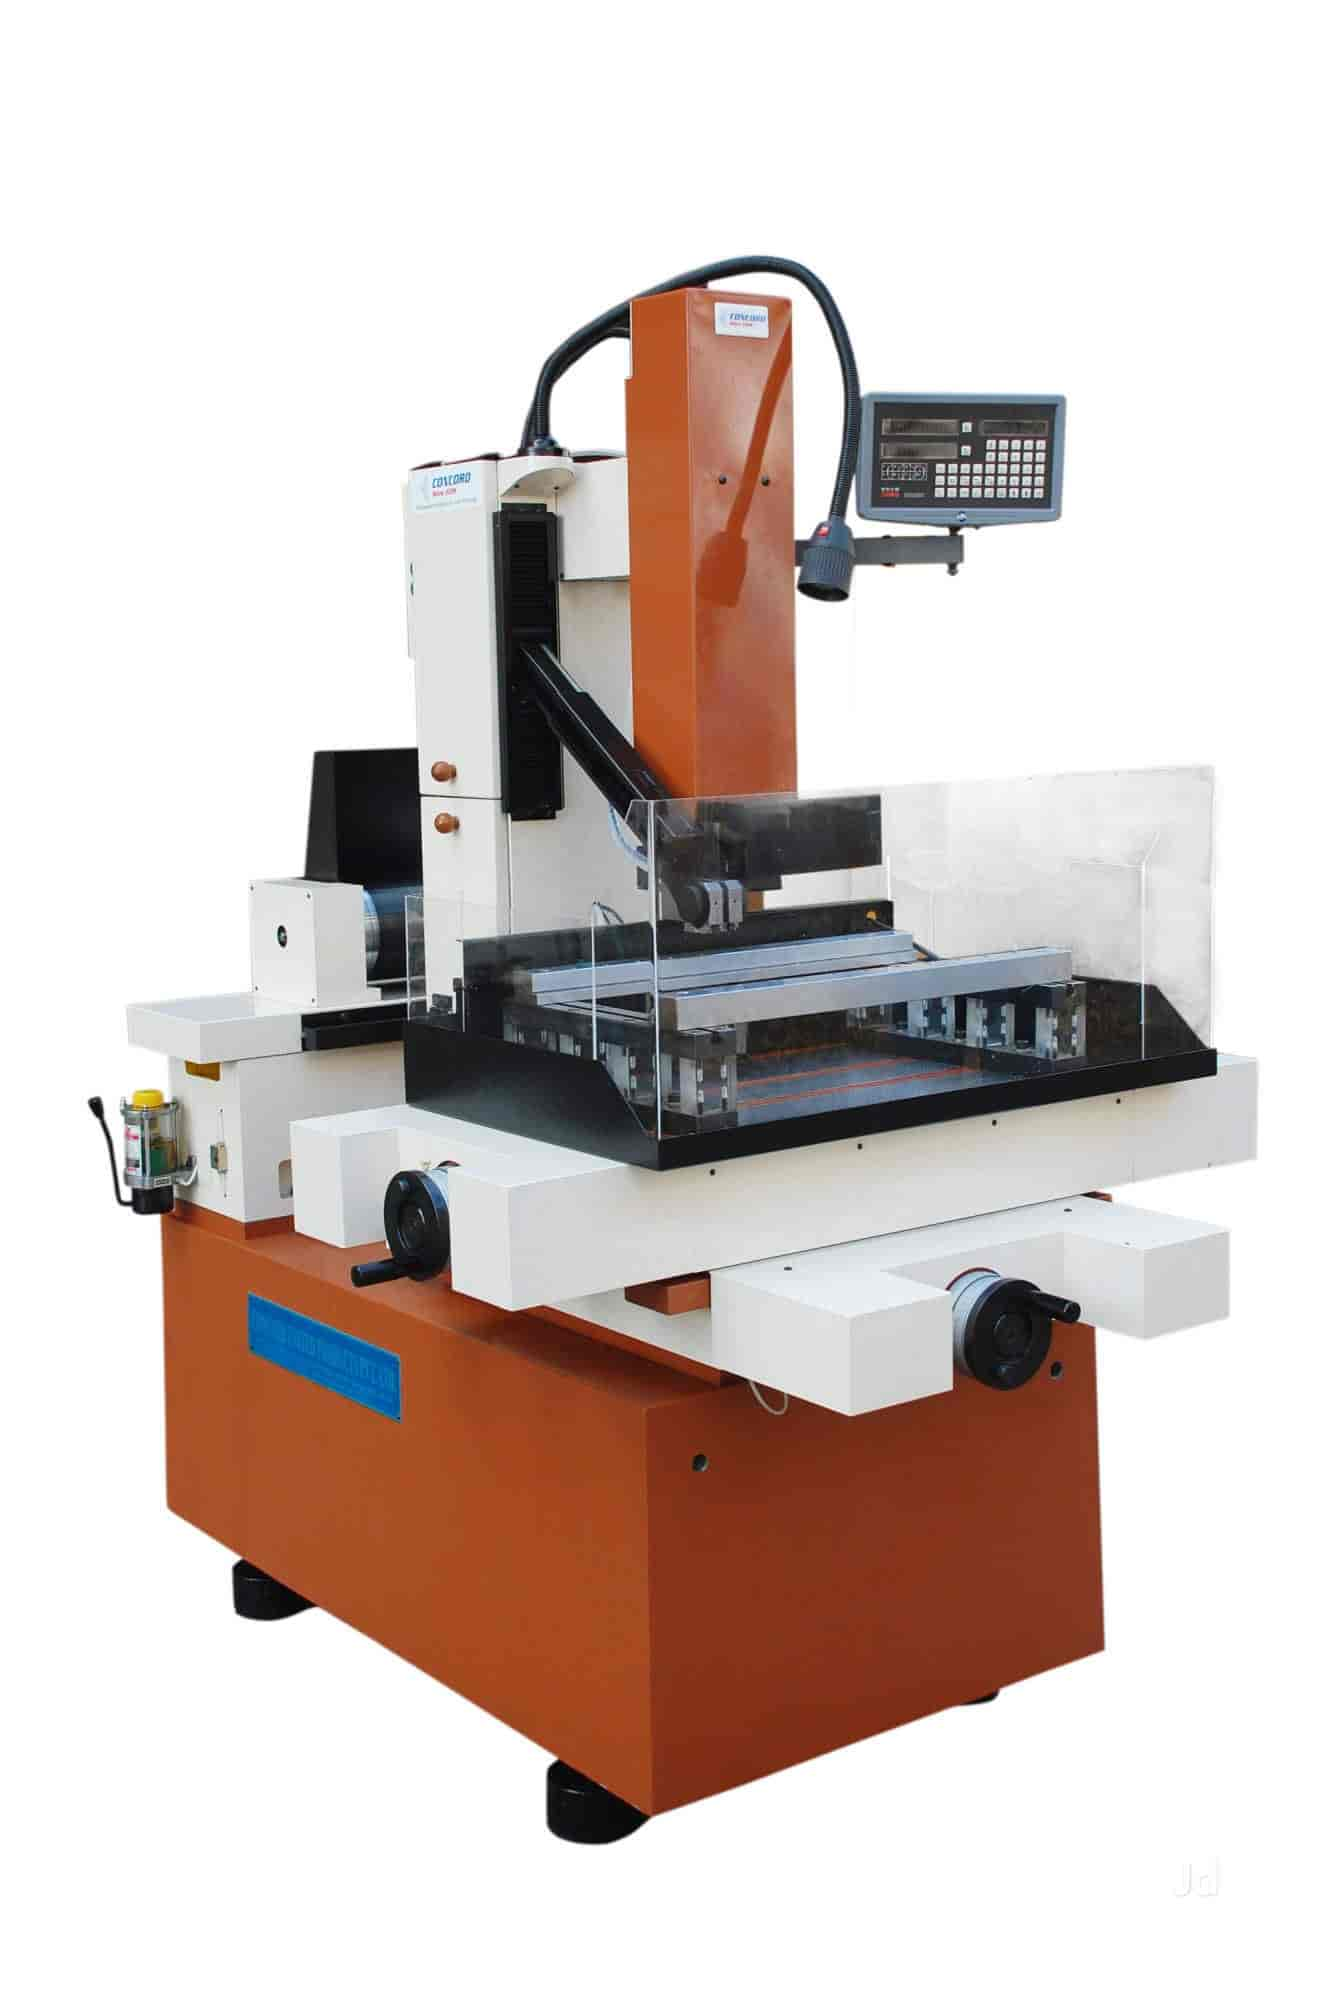 Used cnc wire cut machine for sale in bangalore